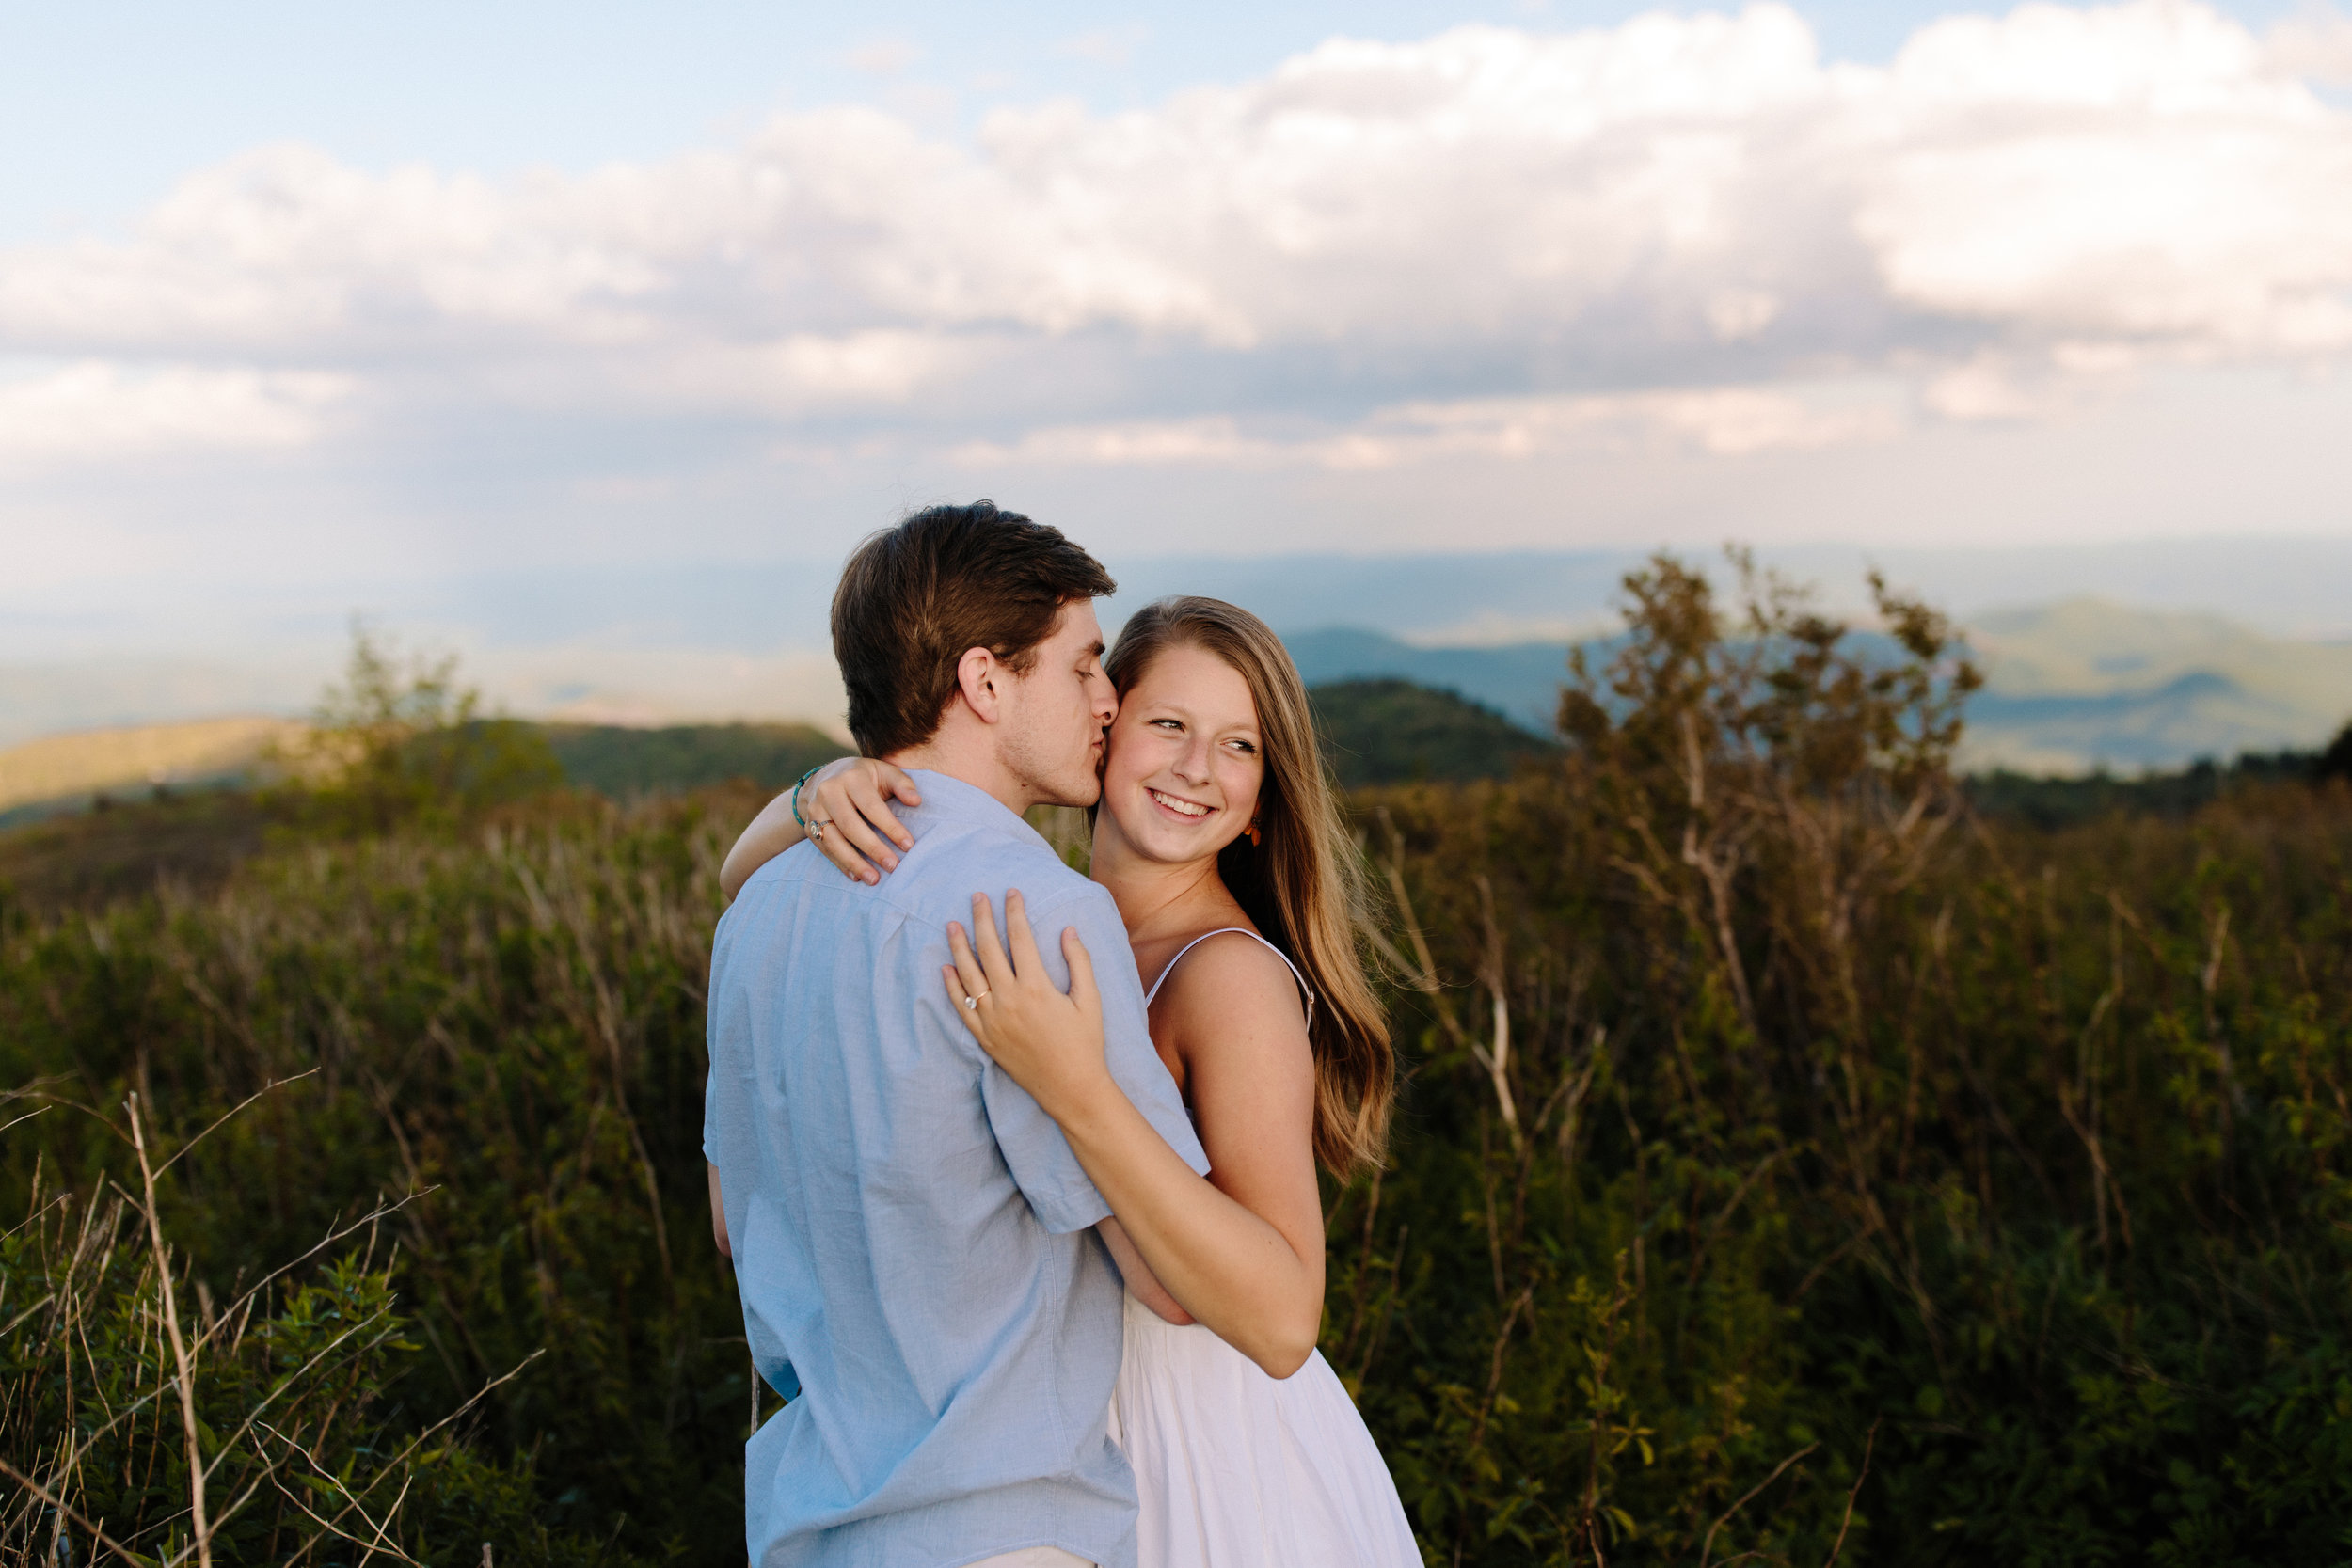 Harper_Johnny_Engagement-59.jpg